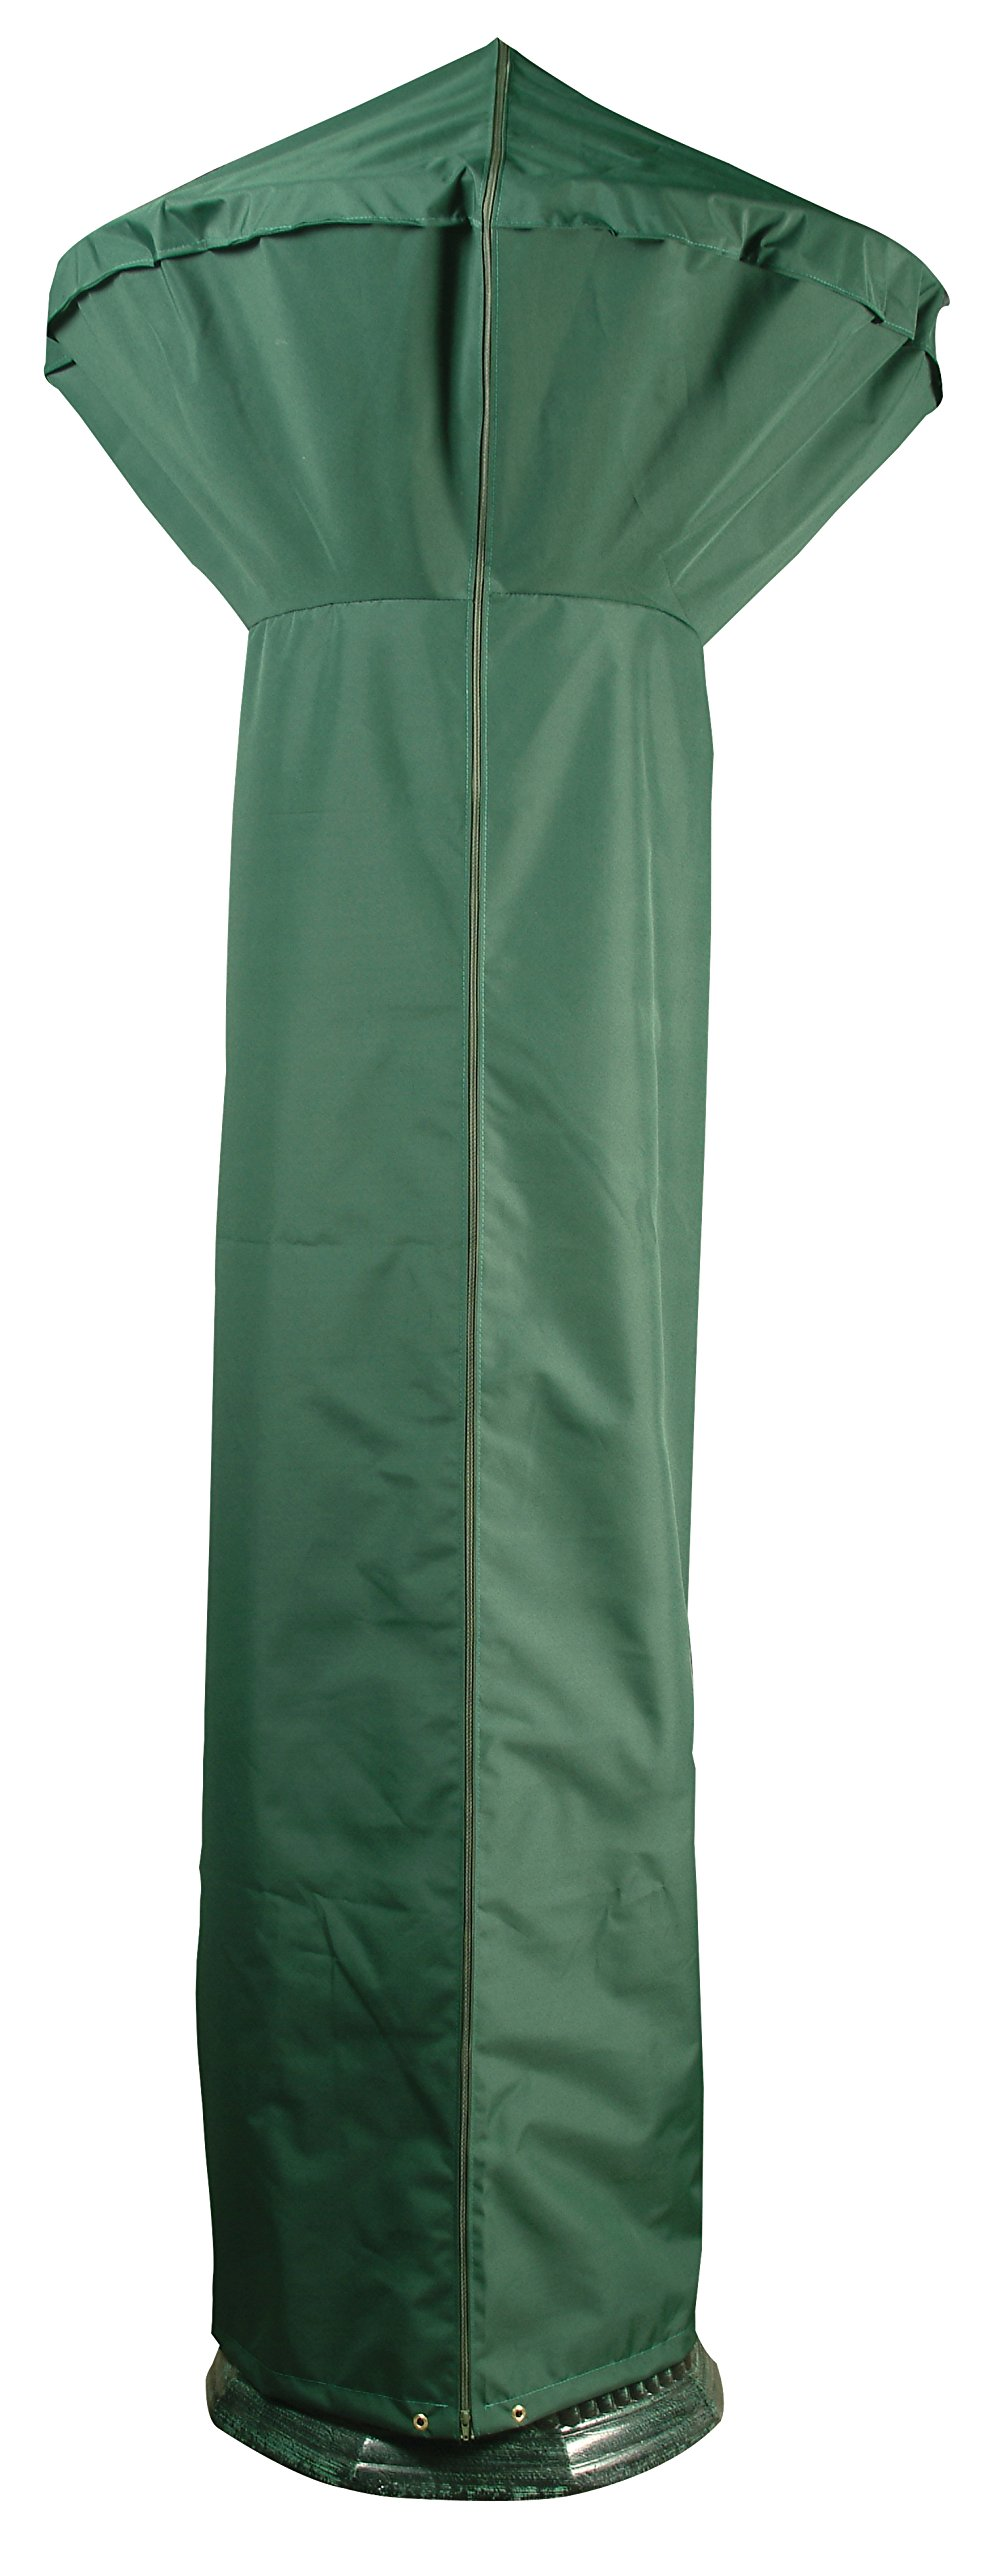 Bosmere Patio Heater Cover, 84'' High x 22'' Wide x 49'' Wide at Top, Green by Bosmere